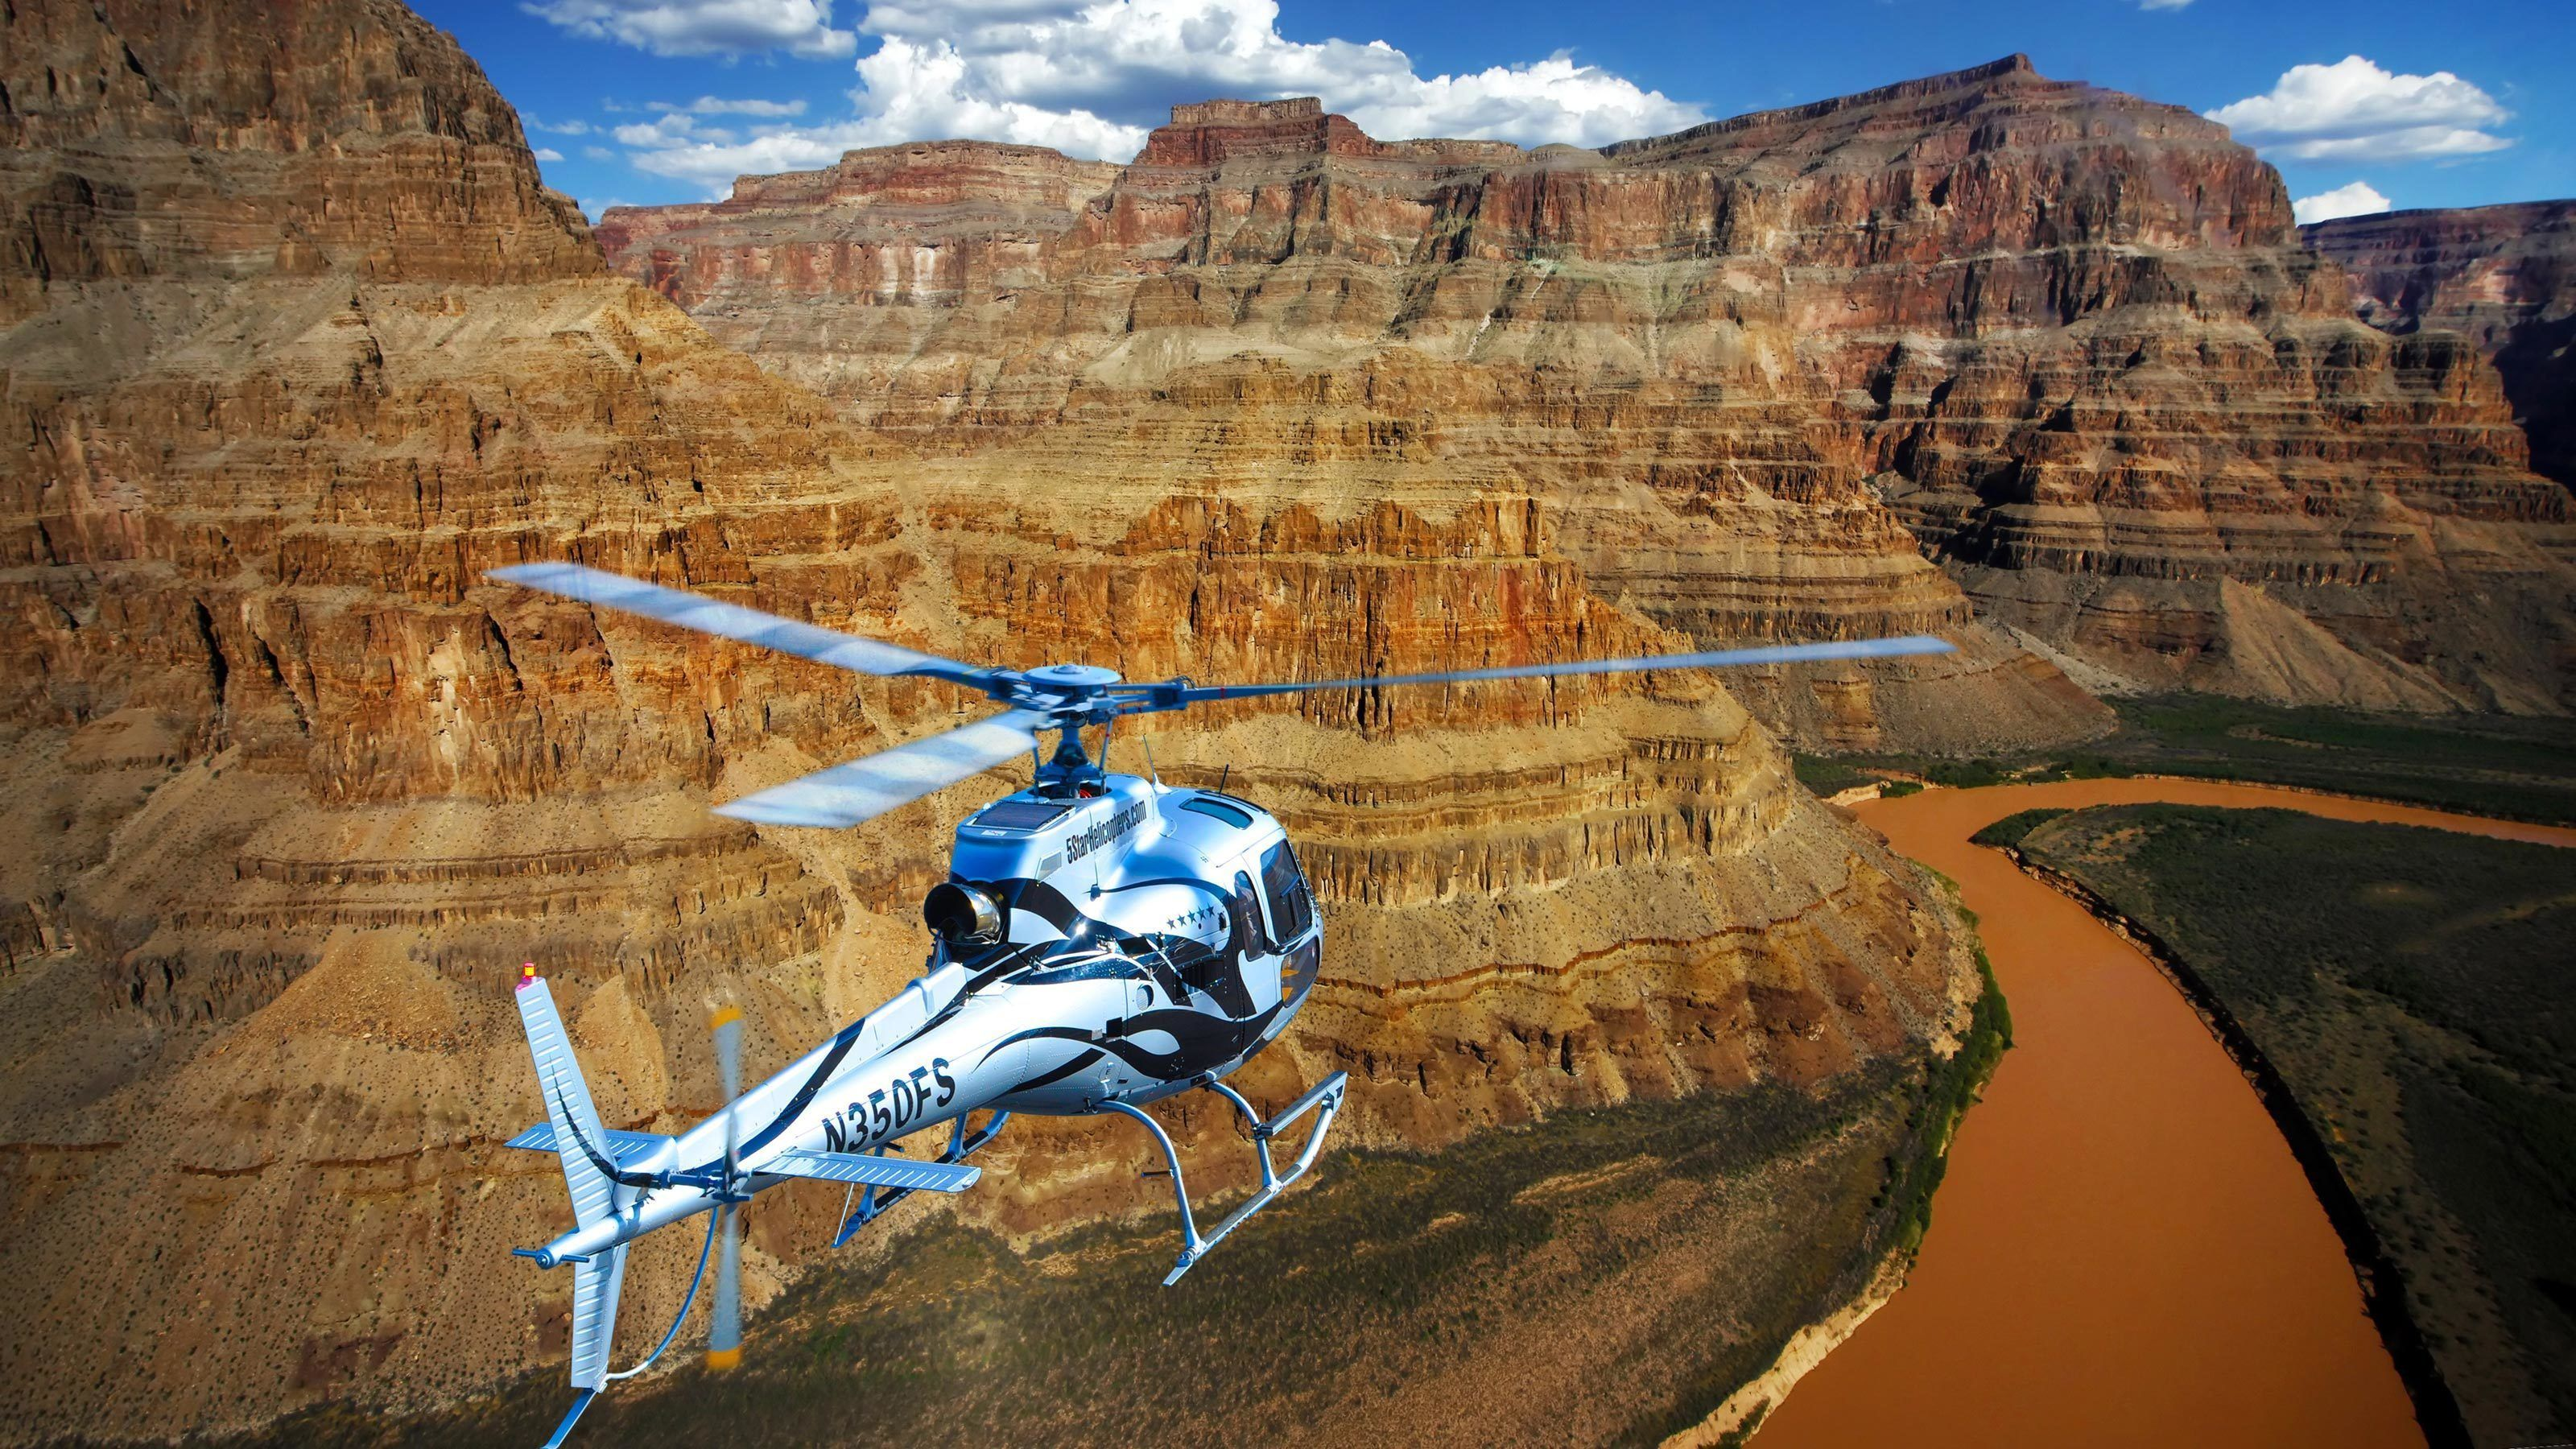 Helicopter hovers over the Colorado river in the Grand Canyon